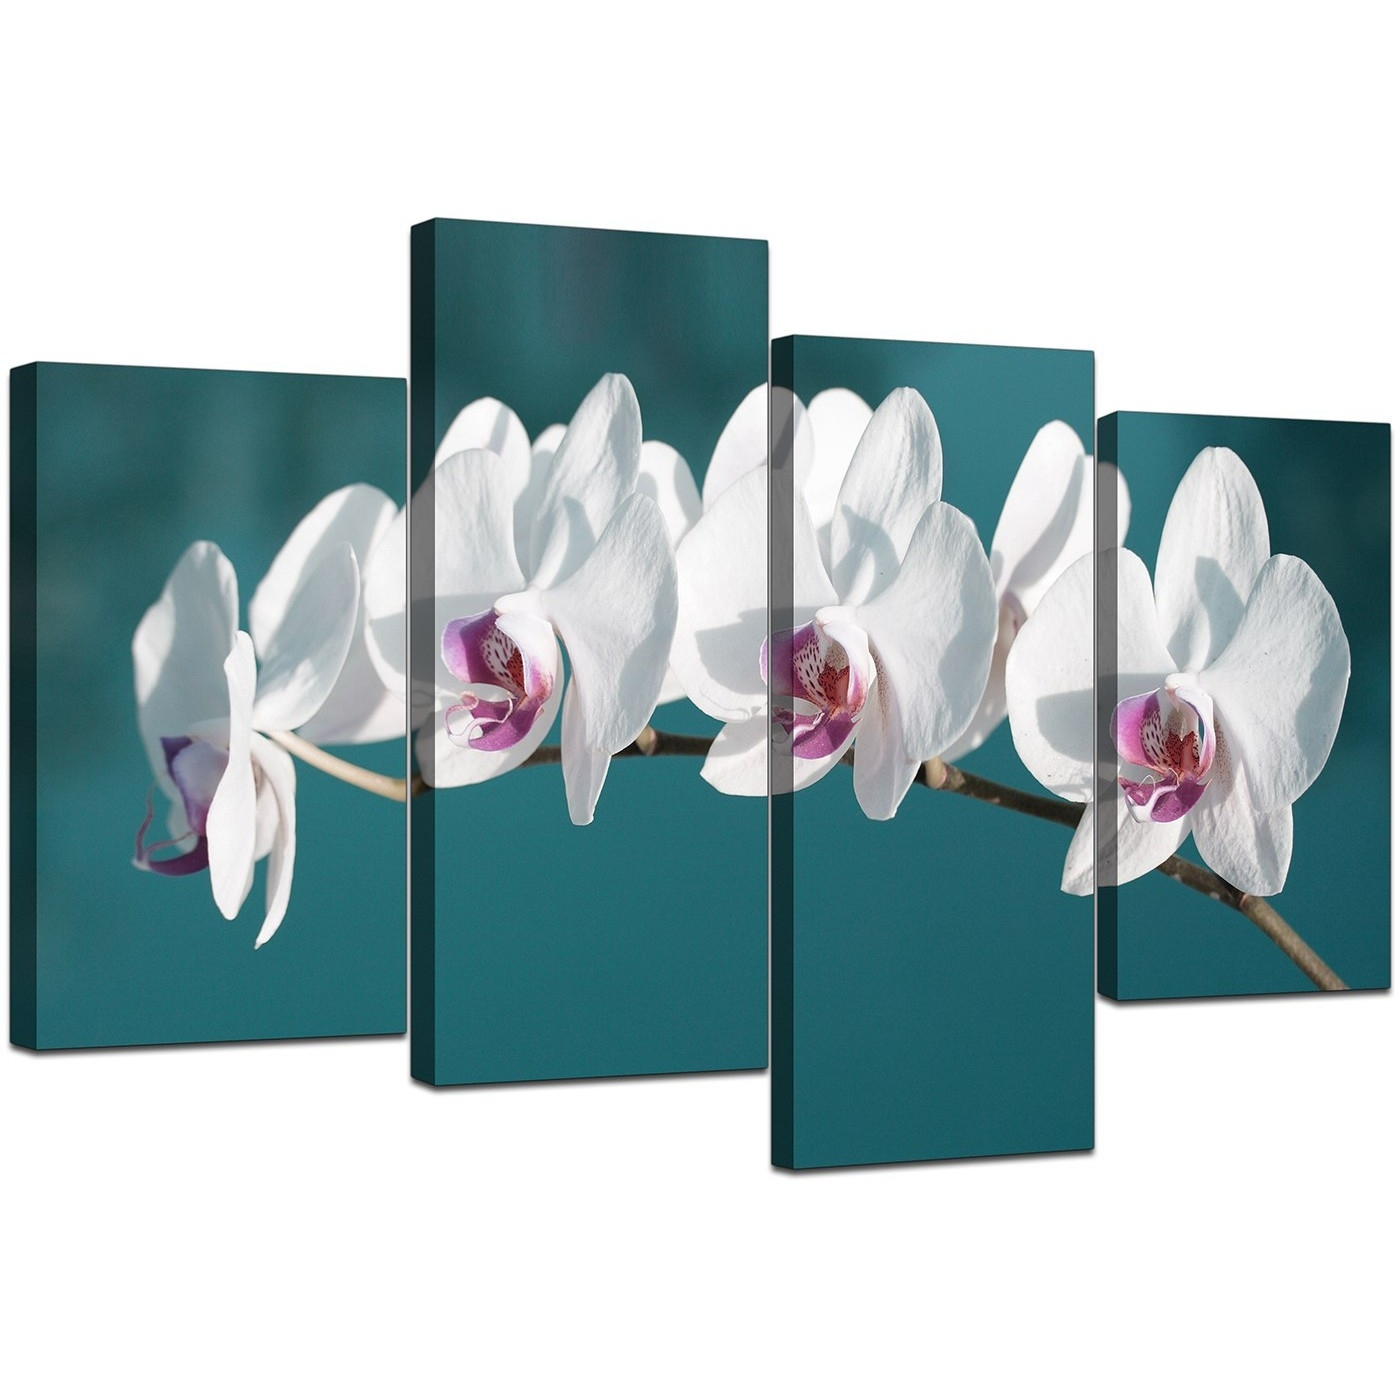 Canvas Wall Art Of White Orchids On Teal Background For Your Office Throughout Latest Orchid Canvas Wall Art (View 12 of 15)